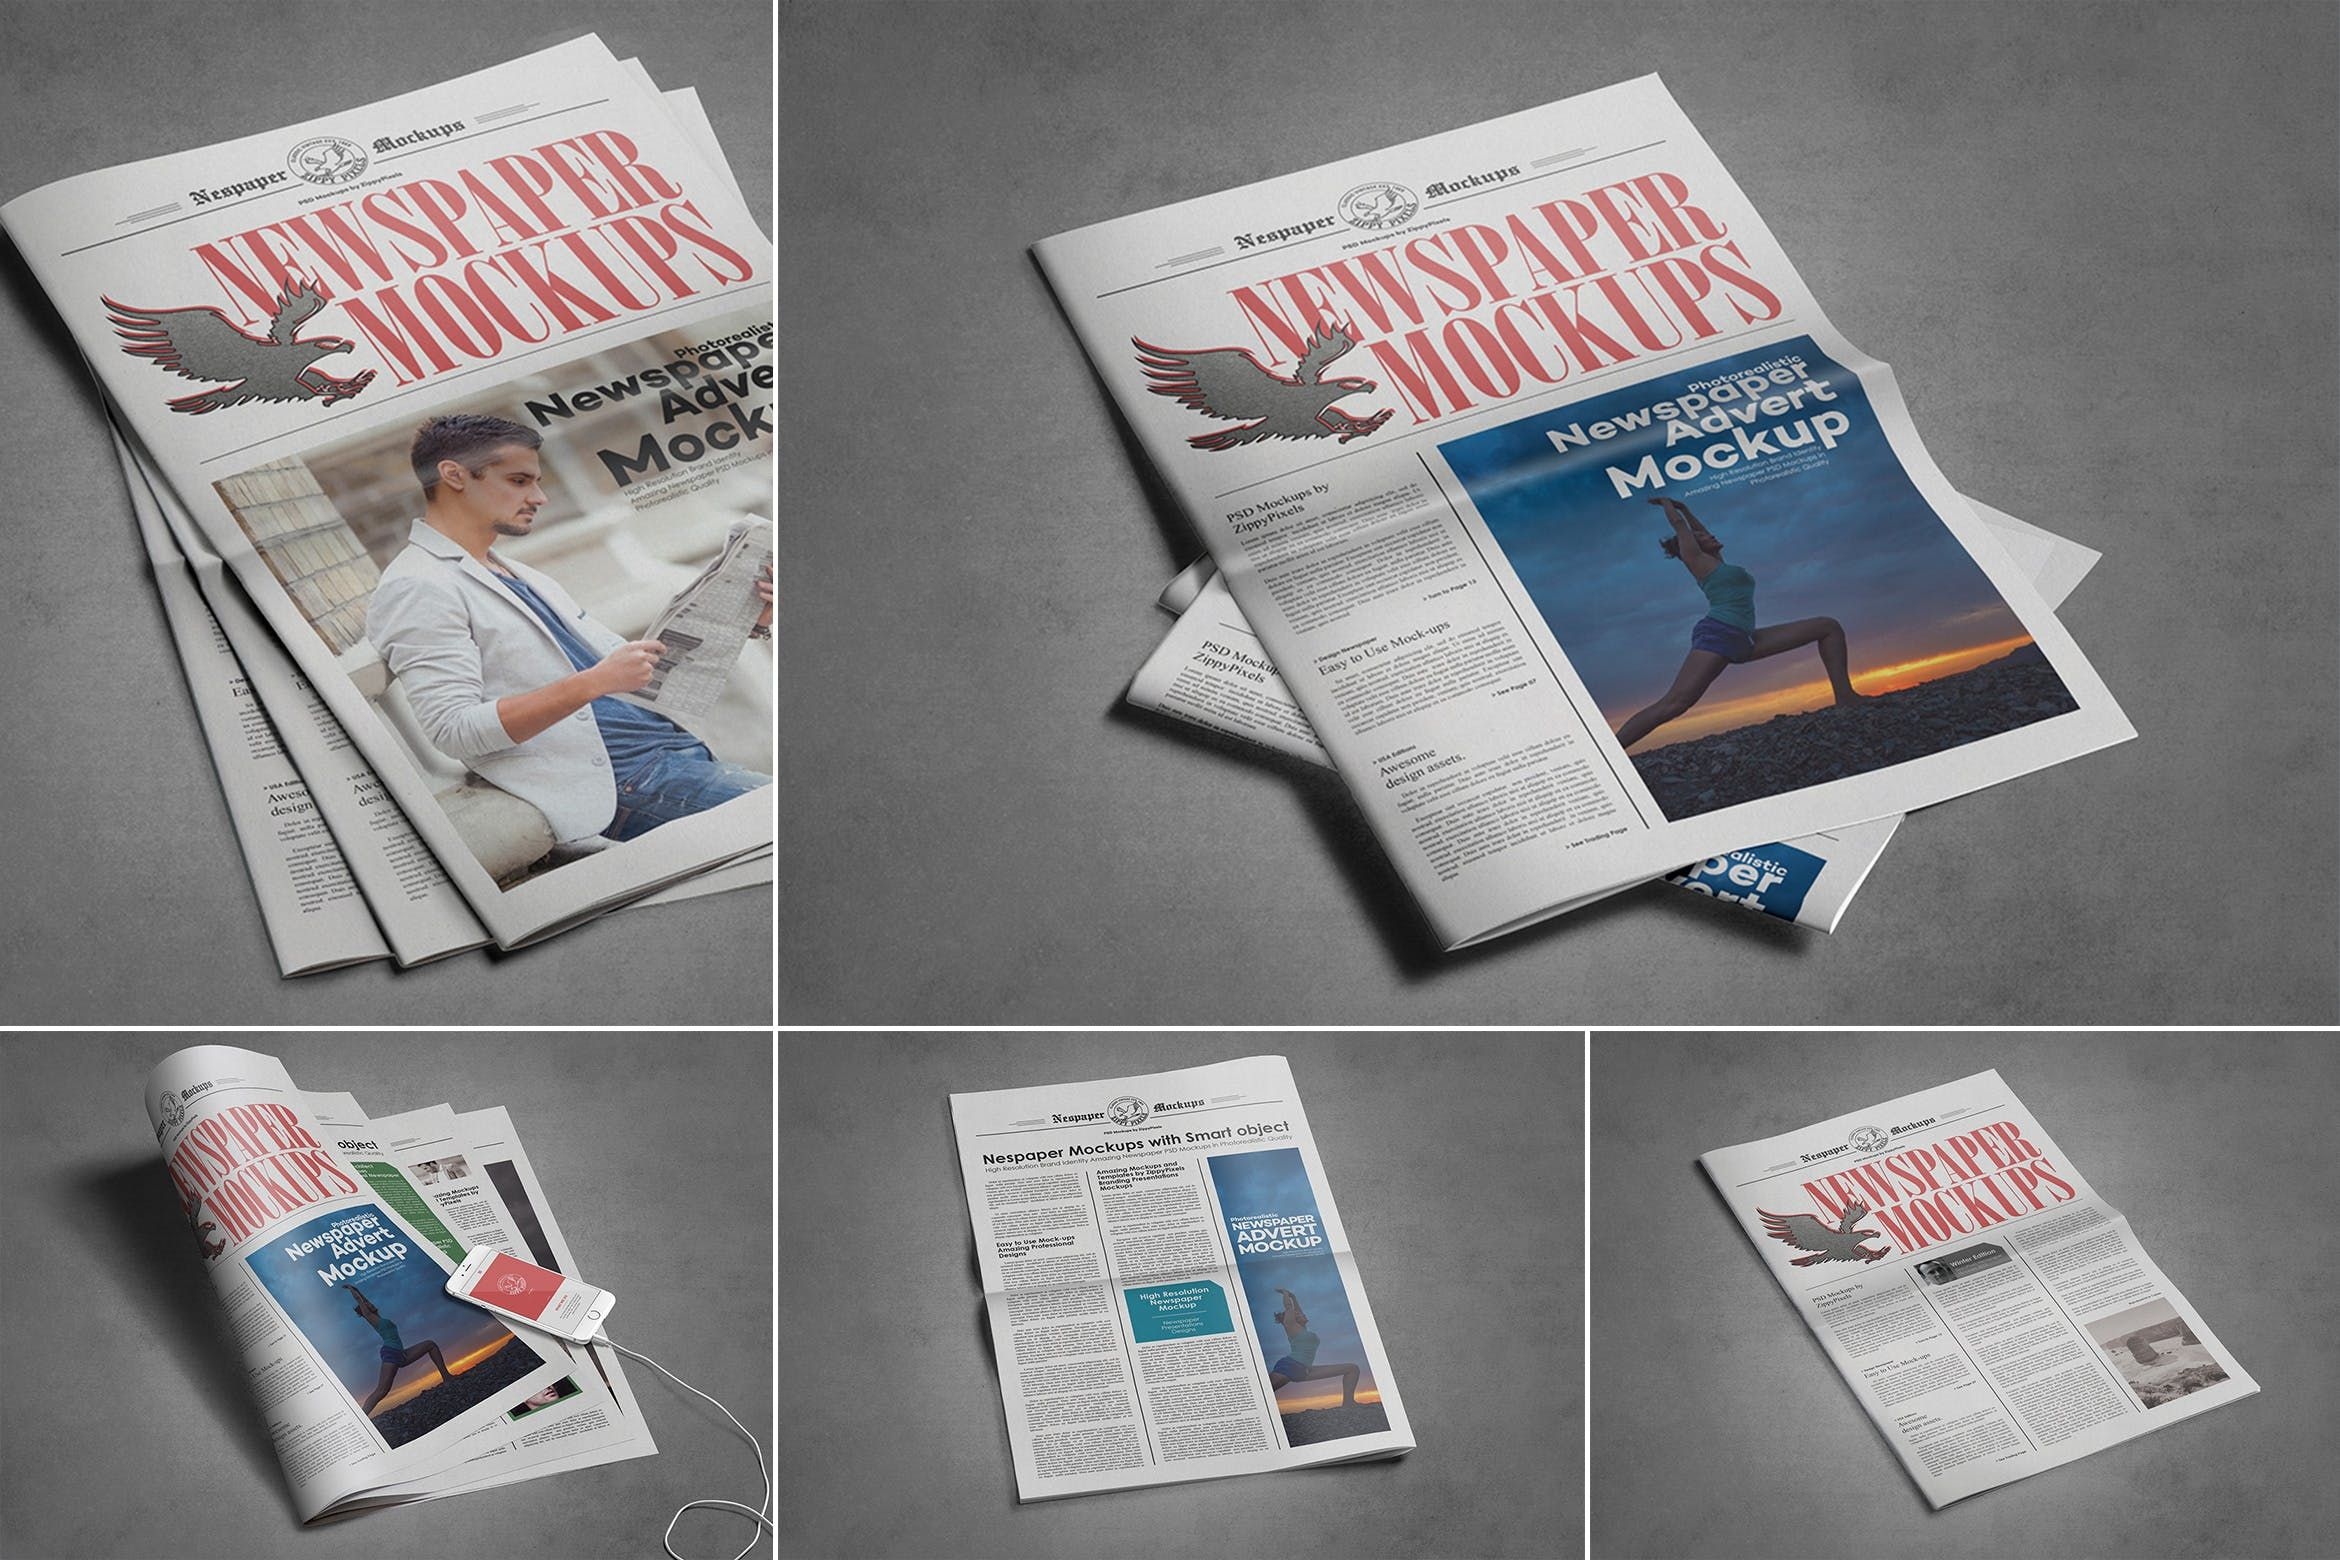 This Is A Psd Newspaper Mockup To Showcase Your Editorial Designs It Includes The Front And Back Newspaper Cover To Let In 2020 Free Mockup Template Design Mockup